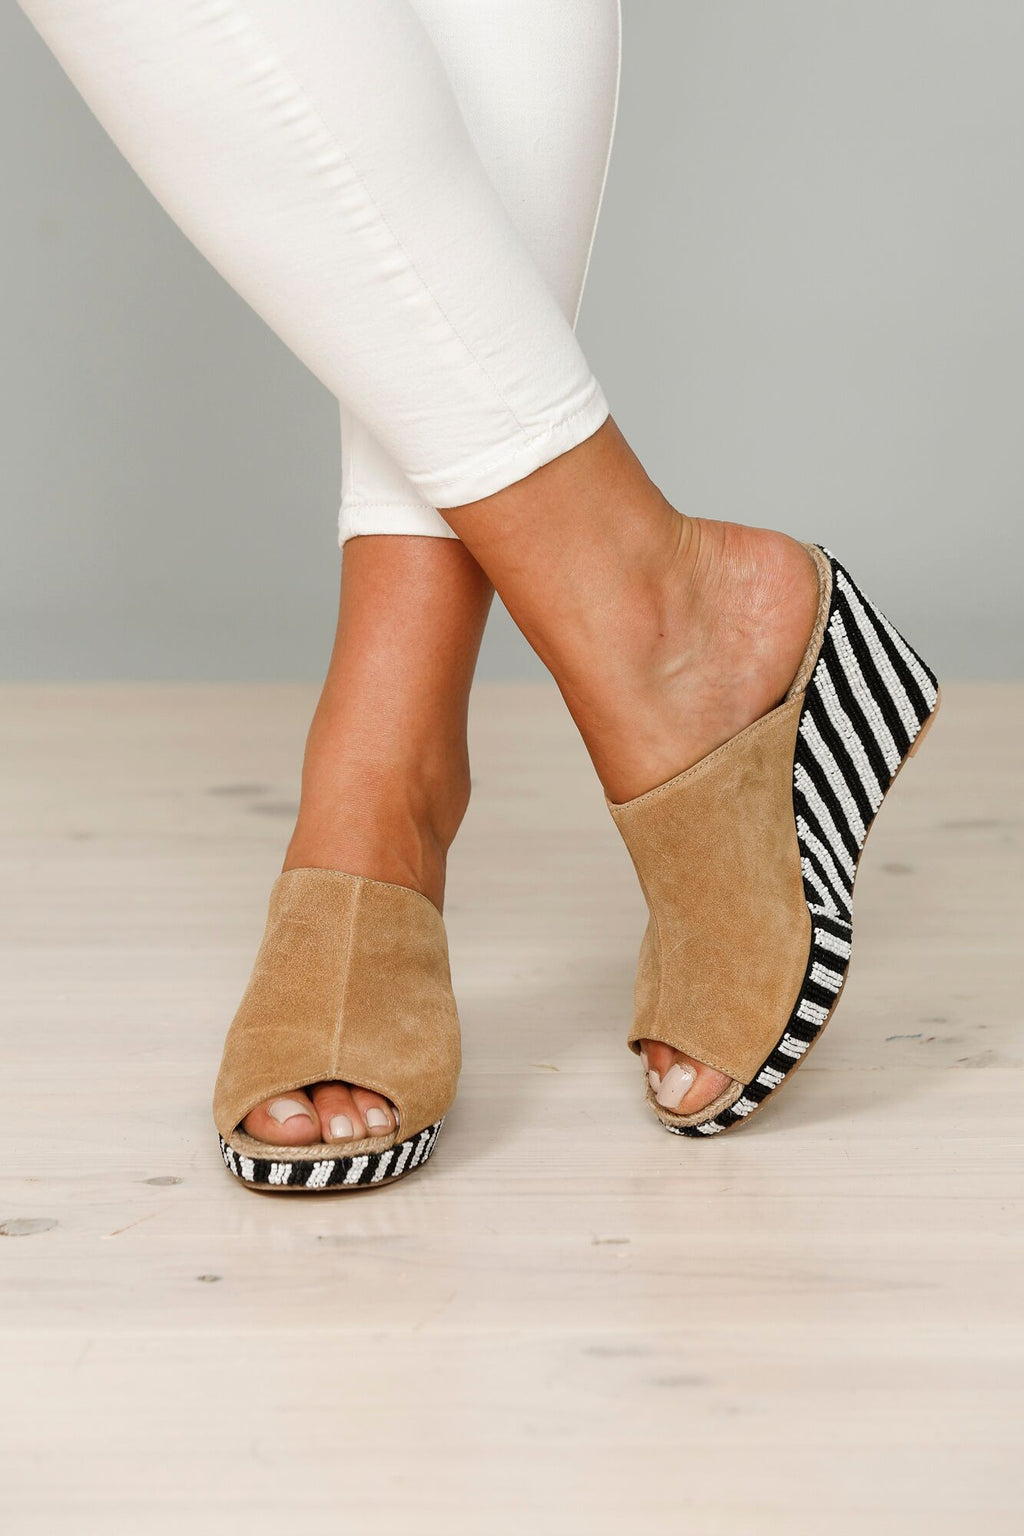 Venice Wedges - Sanchaya Designs